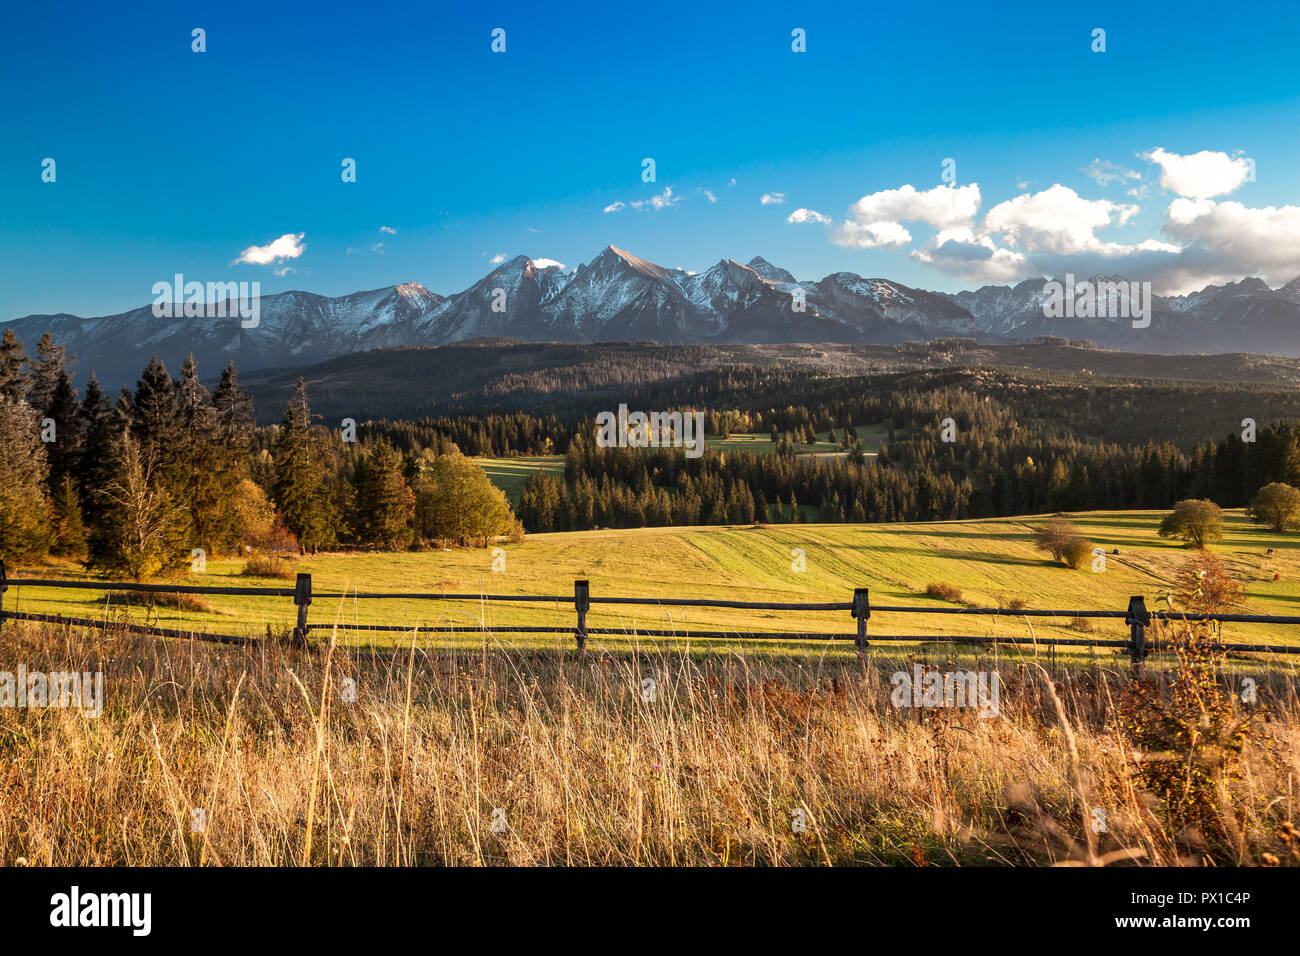 Scenic Tatra Mountains close up from village located in Pieniny region, Poland - Stock Image